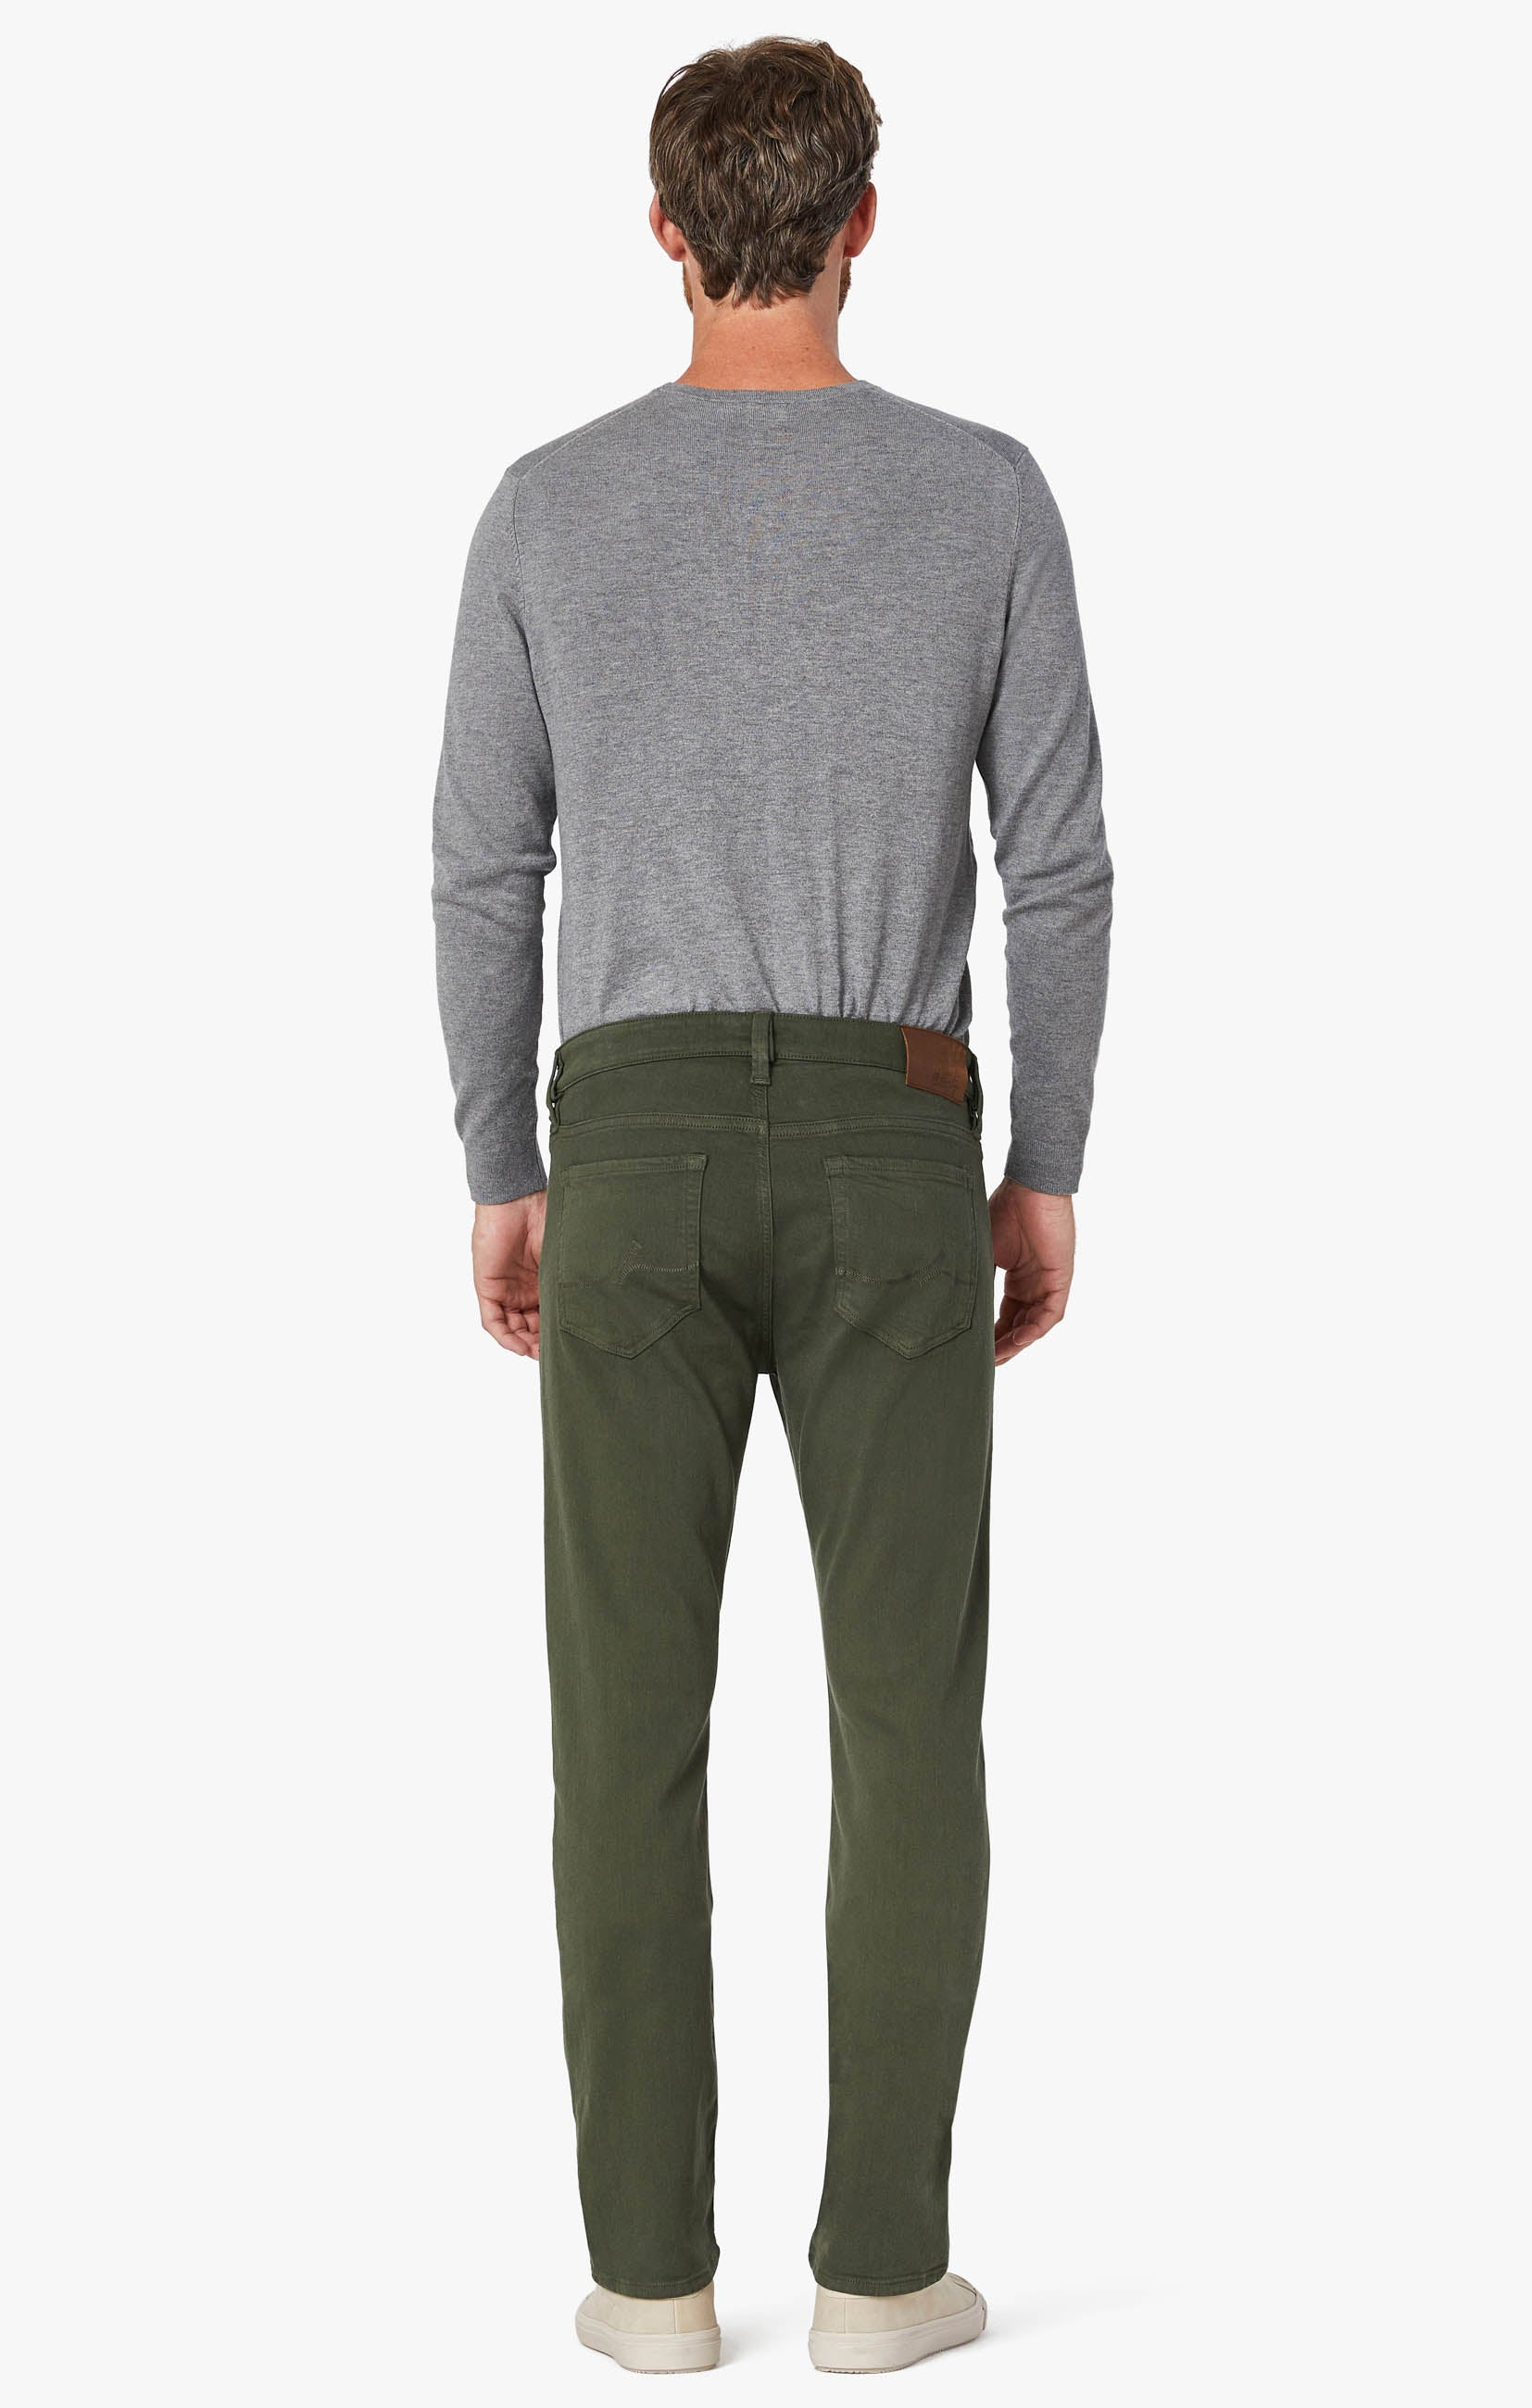 Courage Straight Leg Pants In Military Green Comfort Image 10